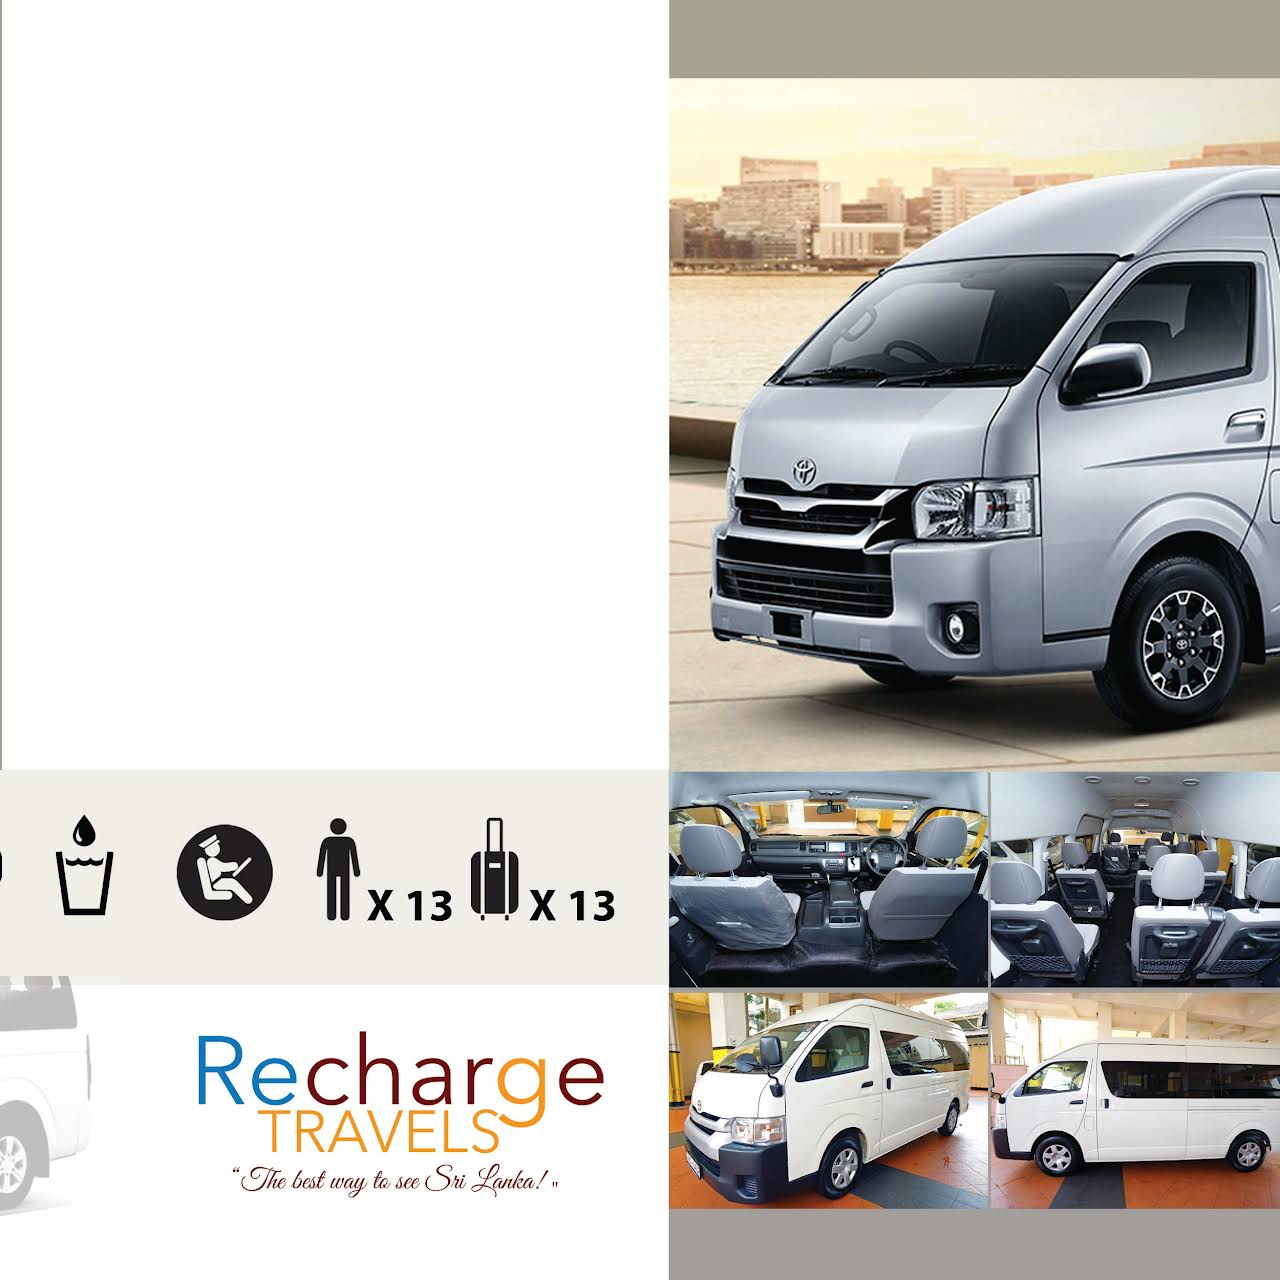 Recharge Travels Ltd - Travel Agency